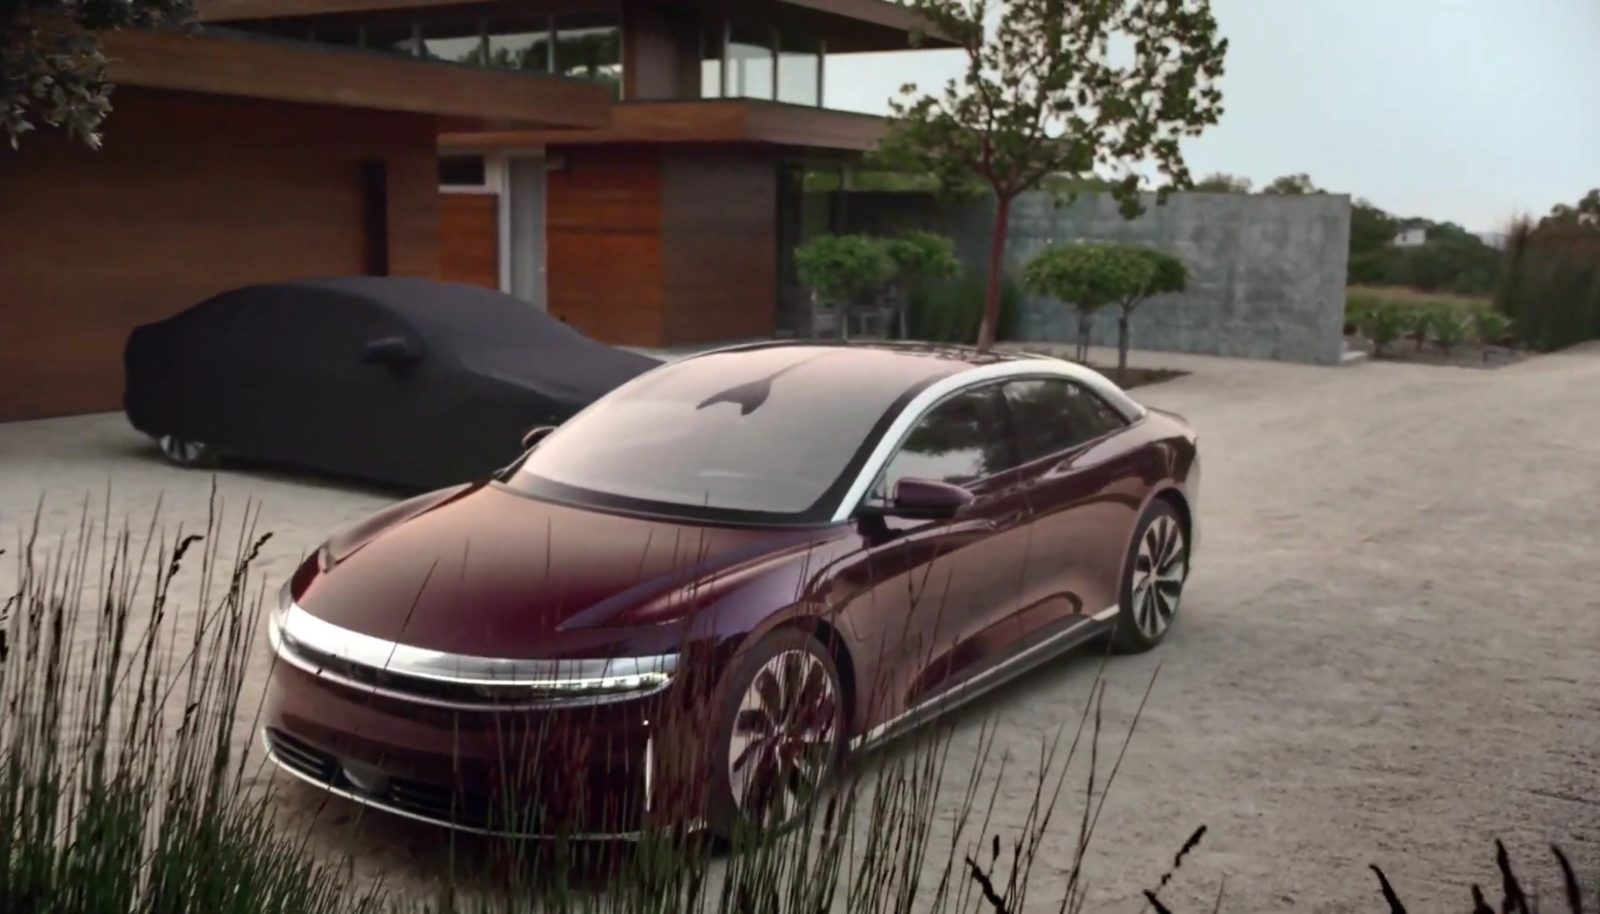 lucid-reveals-dreamdrive-its-ultra-intuitive-advanced-driver-assistance-system